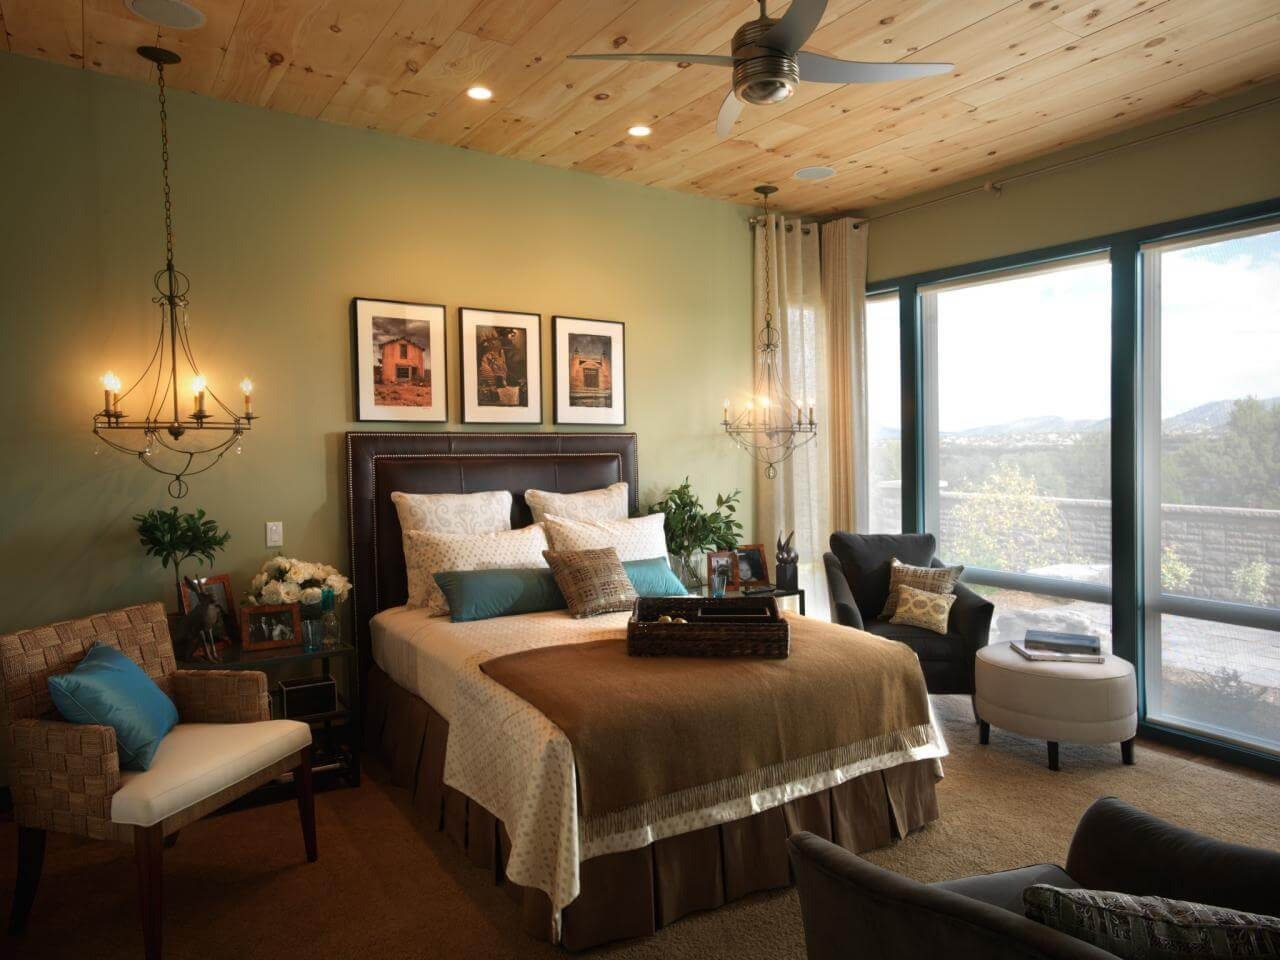 Great master bedrooms green walls with earth tone color of the fabrics that covers the master bed, the chairs and the carpet. Also a light wood ceiling that has a 4 propeller fan.